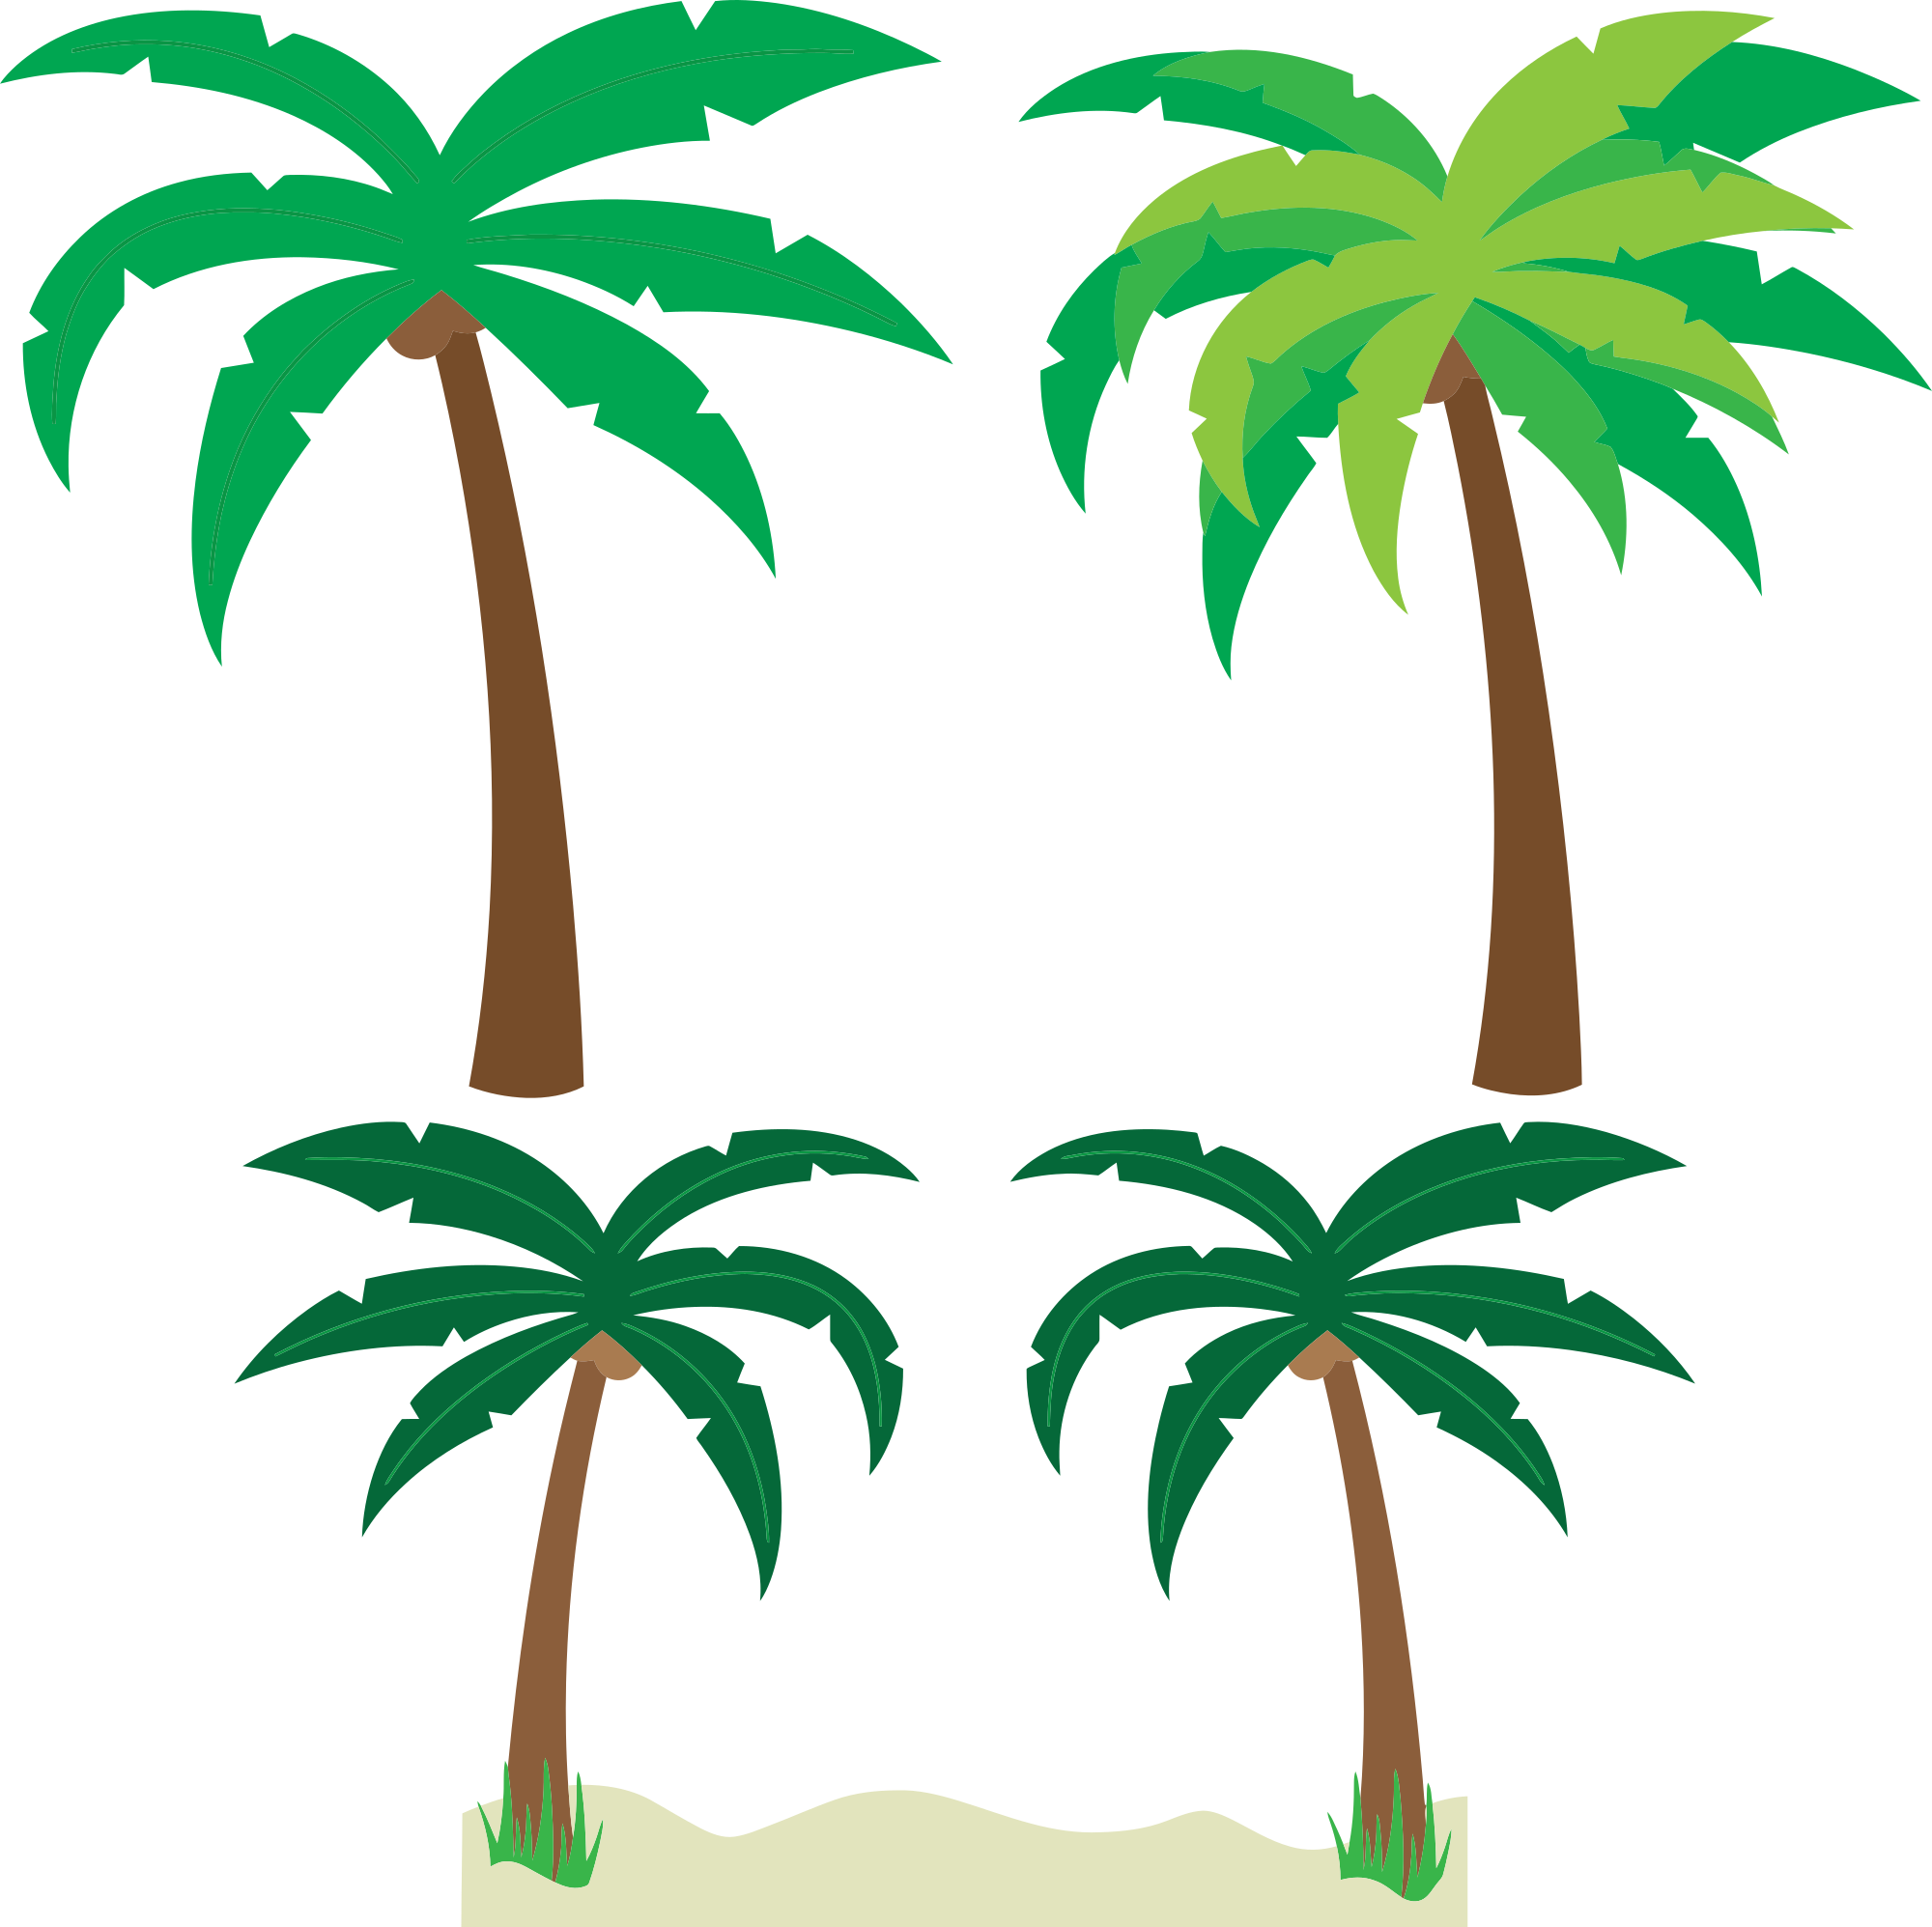 2000x1995 Free Cartoon Palm Trees Clipart And Vector Image